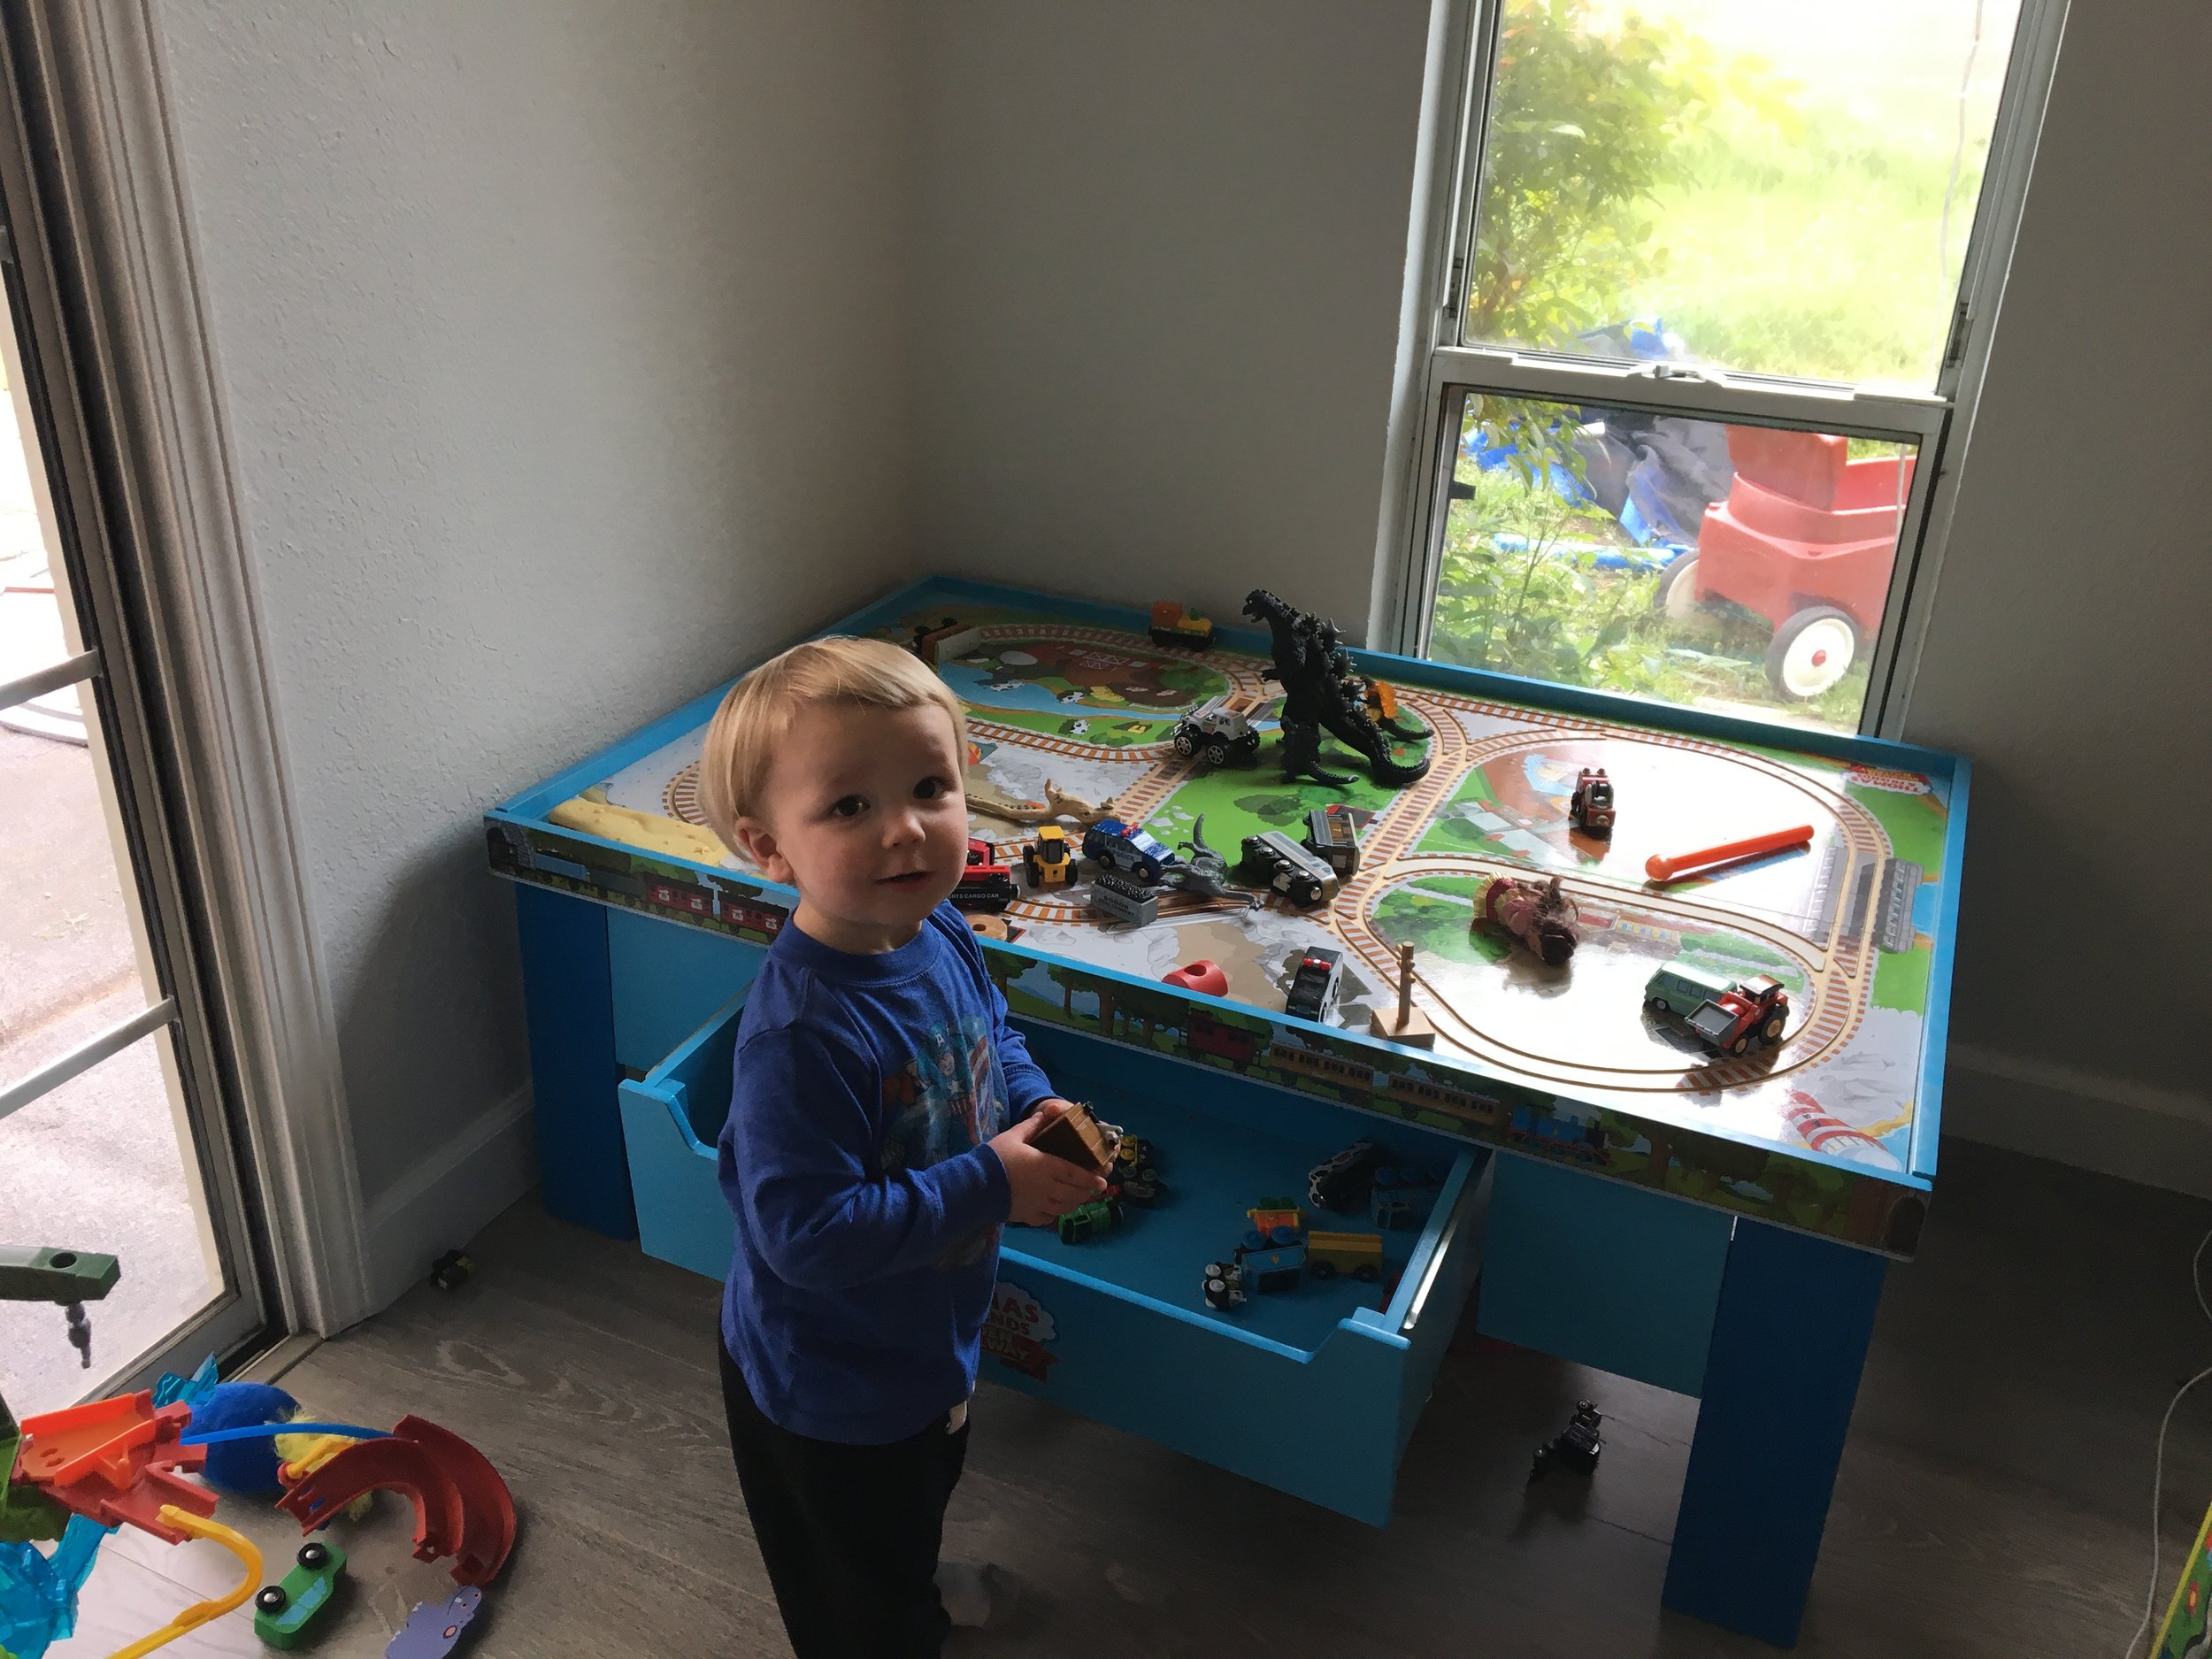 Living his best toddler life -- train table fun at a friend's house